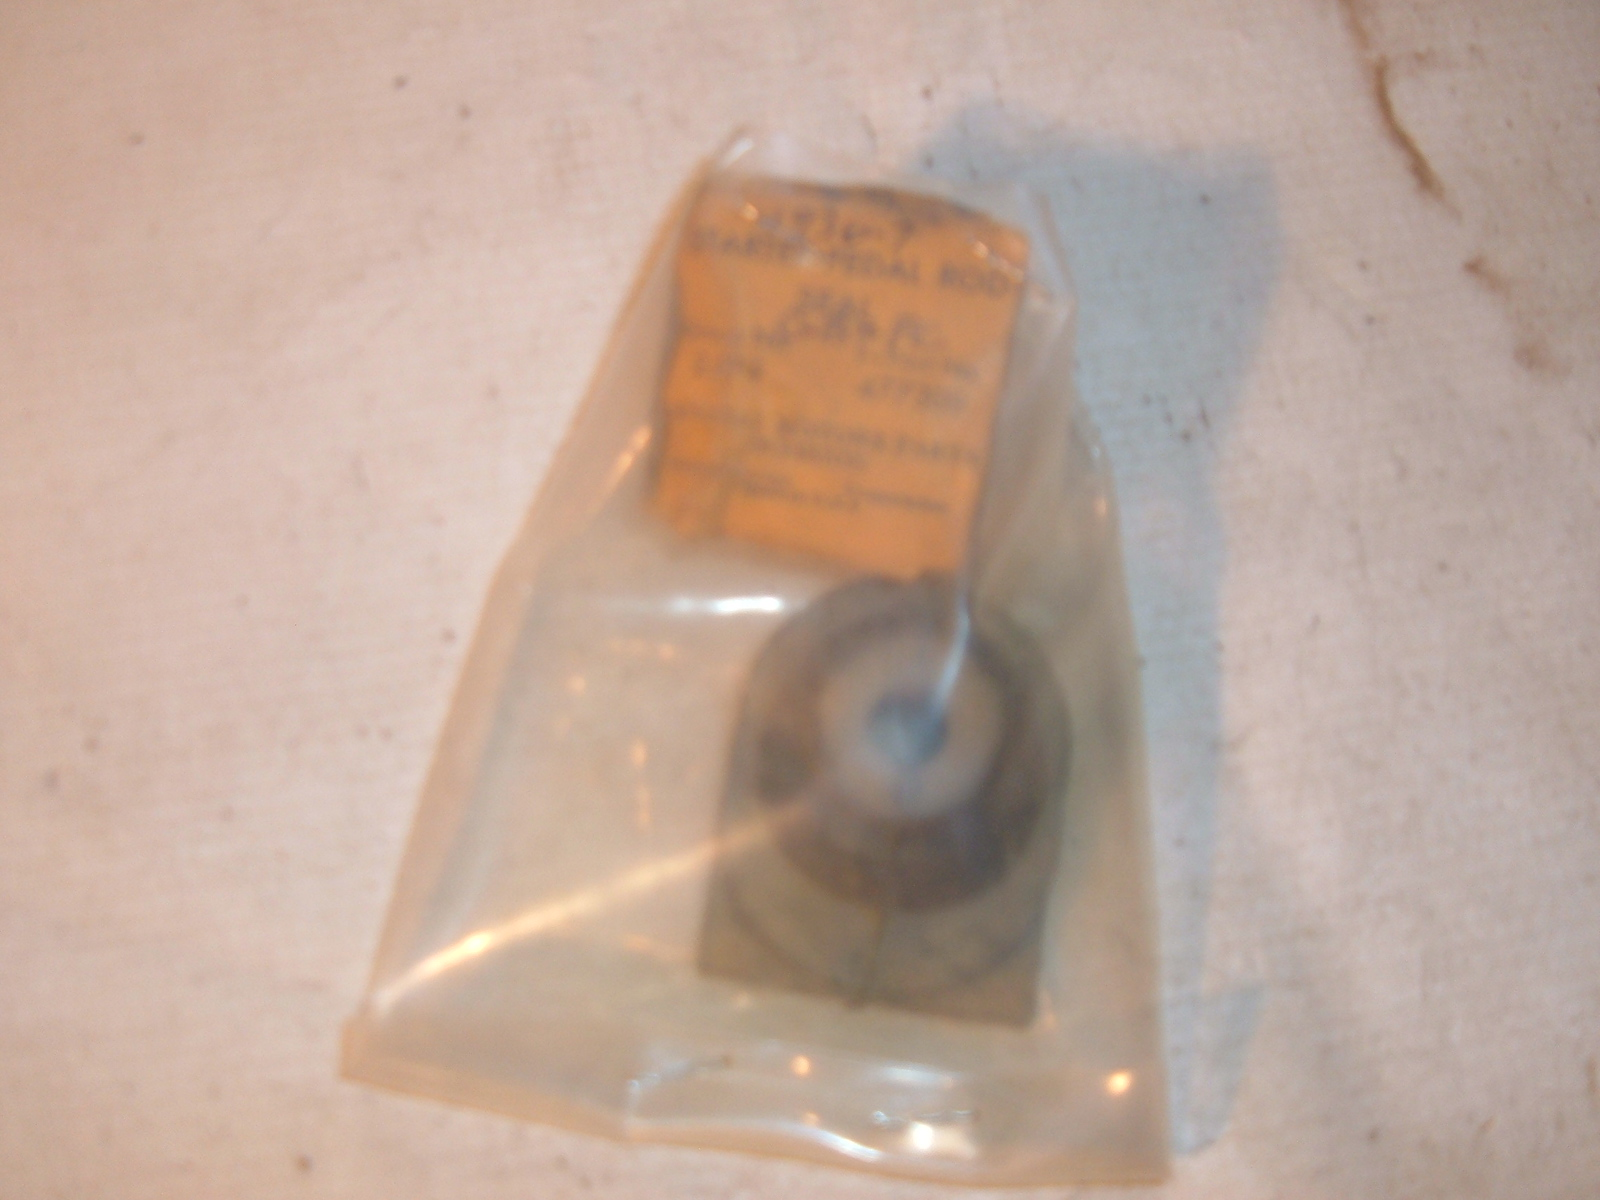 1936 37 chevrolet starter pedal rod boot nos gm # 477309 (z 477309)